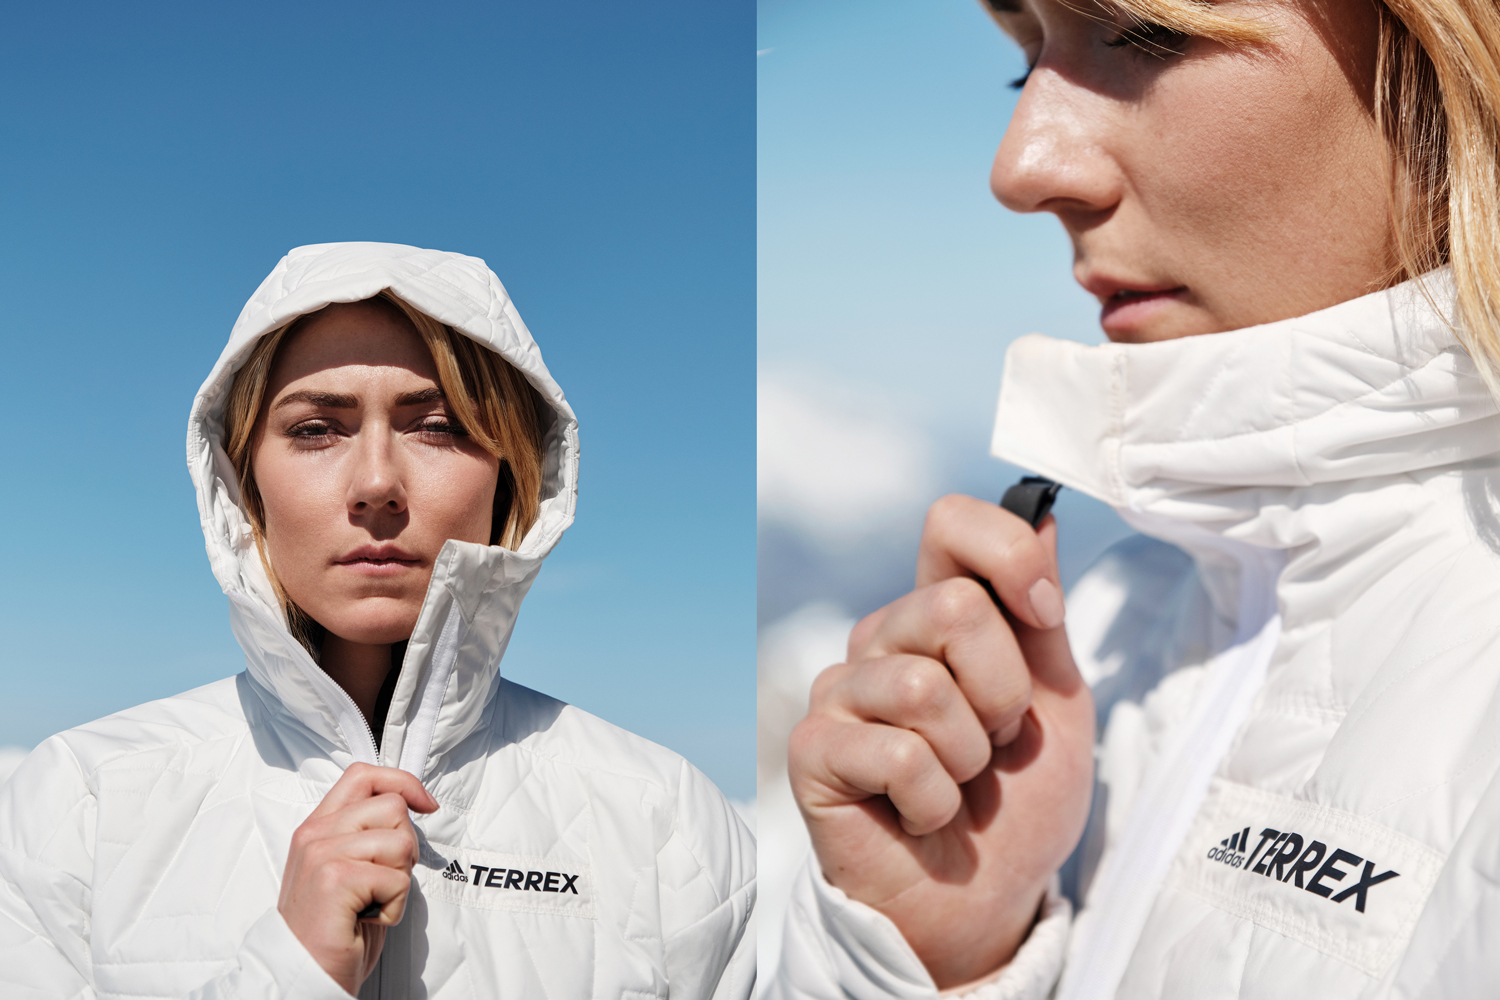 Adidas terrex myshelter primaloft hooded jacket parley ocean plastic hoodie hoody recycled materials end waste sustainability white womens mens outdoors